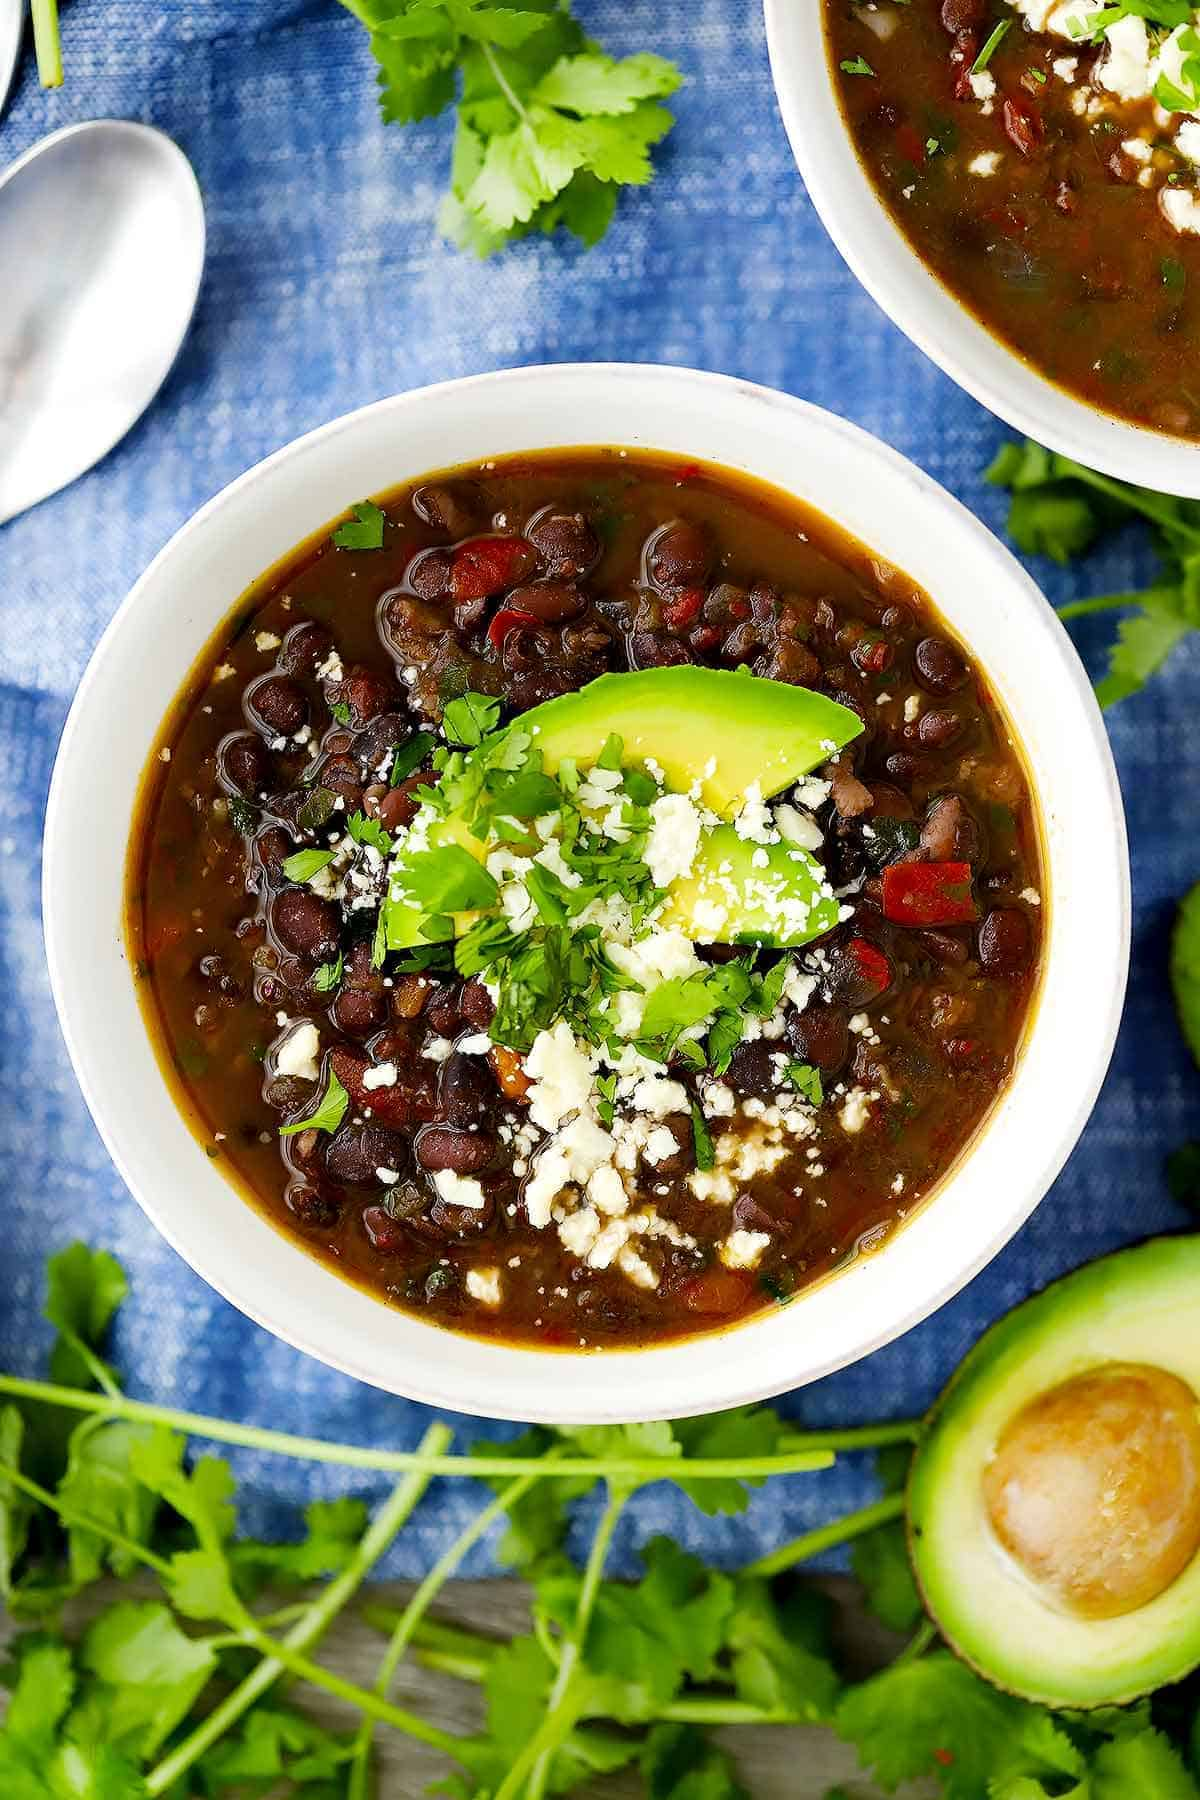 An overhead vertical image of a bowl of black bean soup.